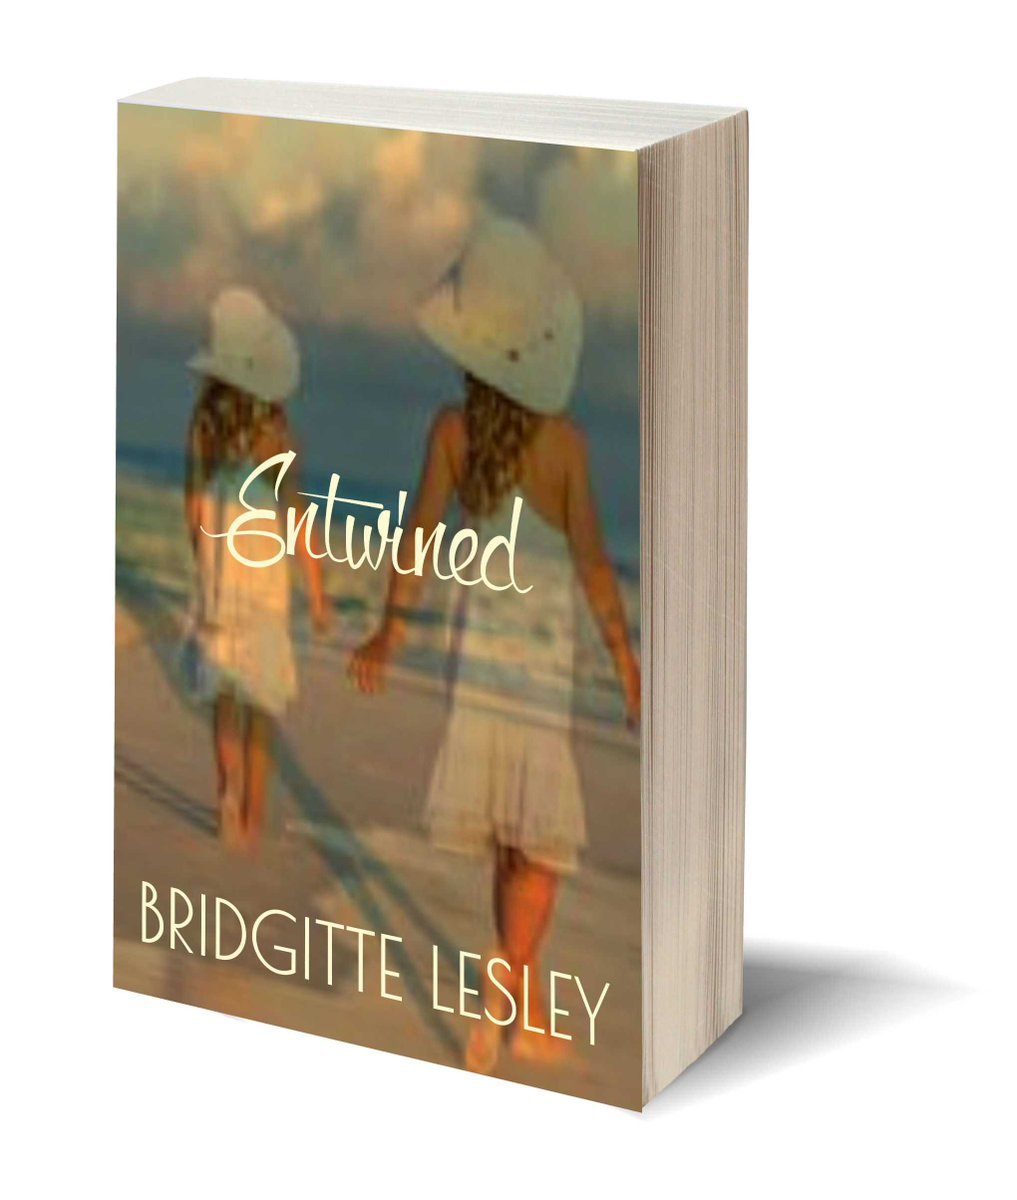 ★ENTWINED★ He would get through to her even if he had to bide his time! http://bit.ly/Entwined-eBook  http://bit.ly/Entwined-Paperback…     ASMSG #bookboost Pizzazz_Books #romancenovels pic.twitter.com/clx2AIfKhS